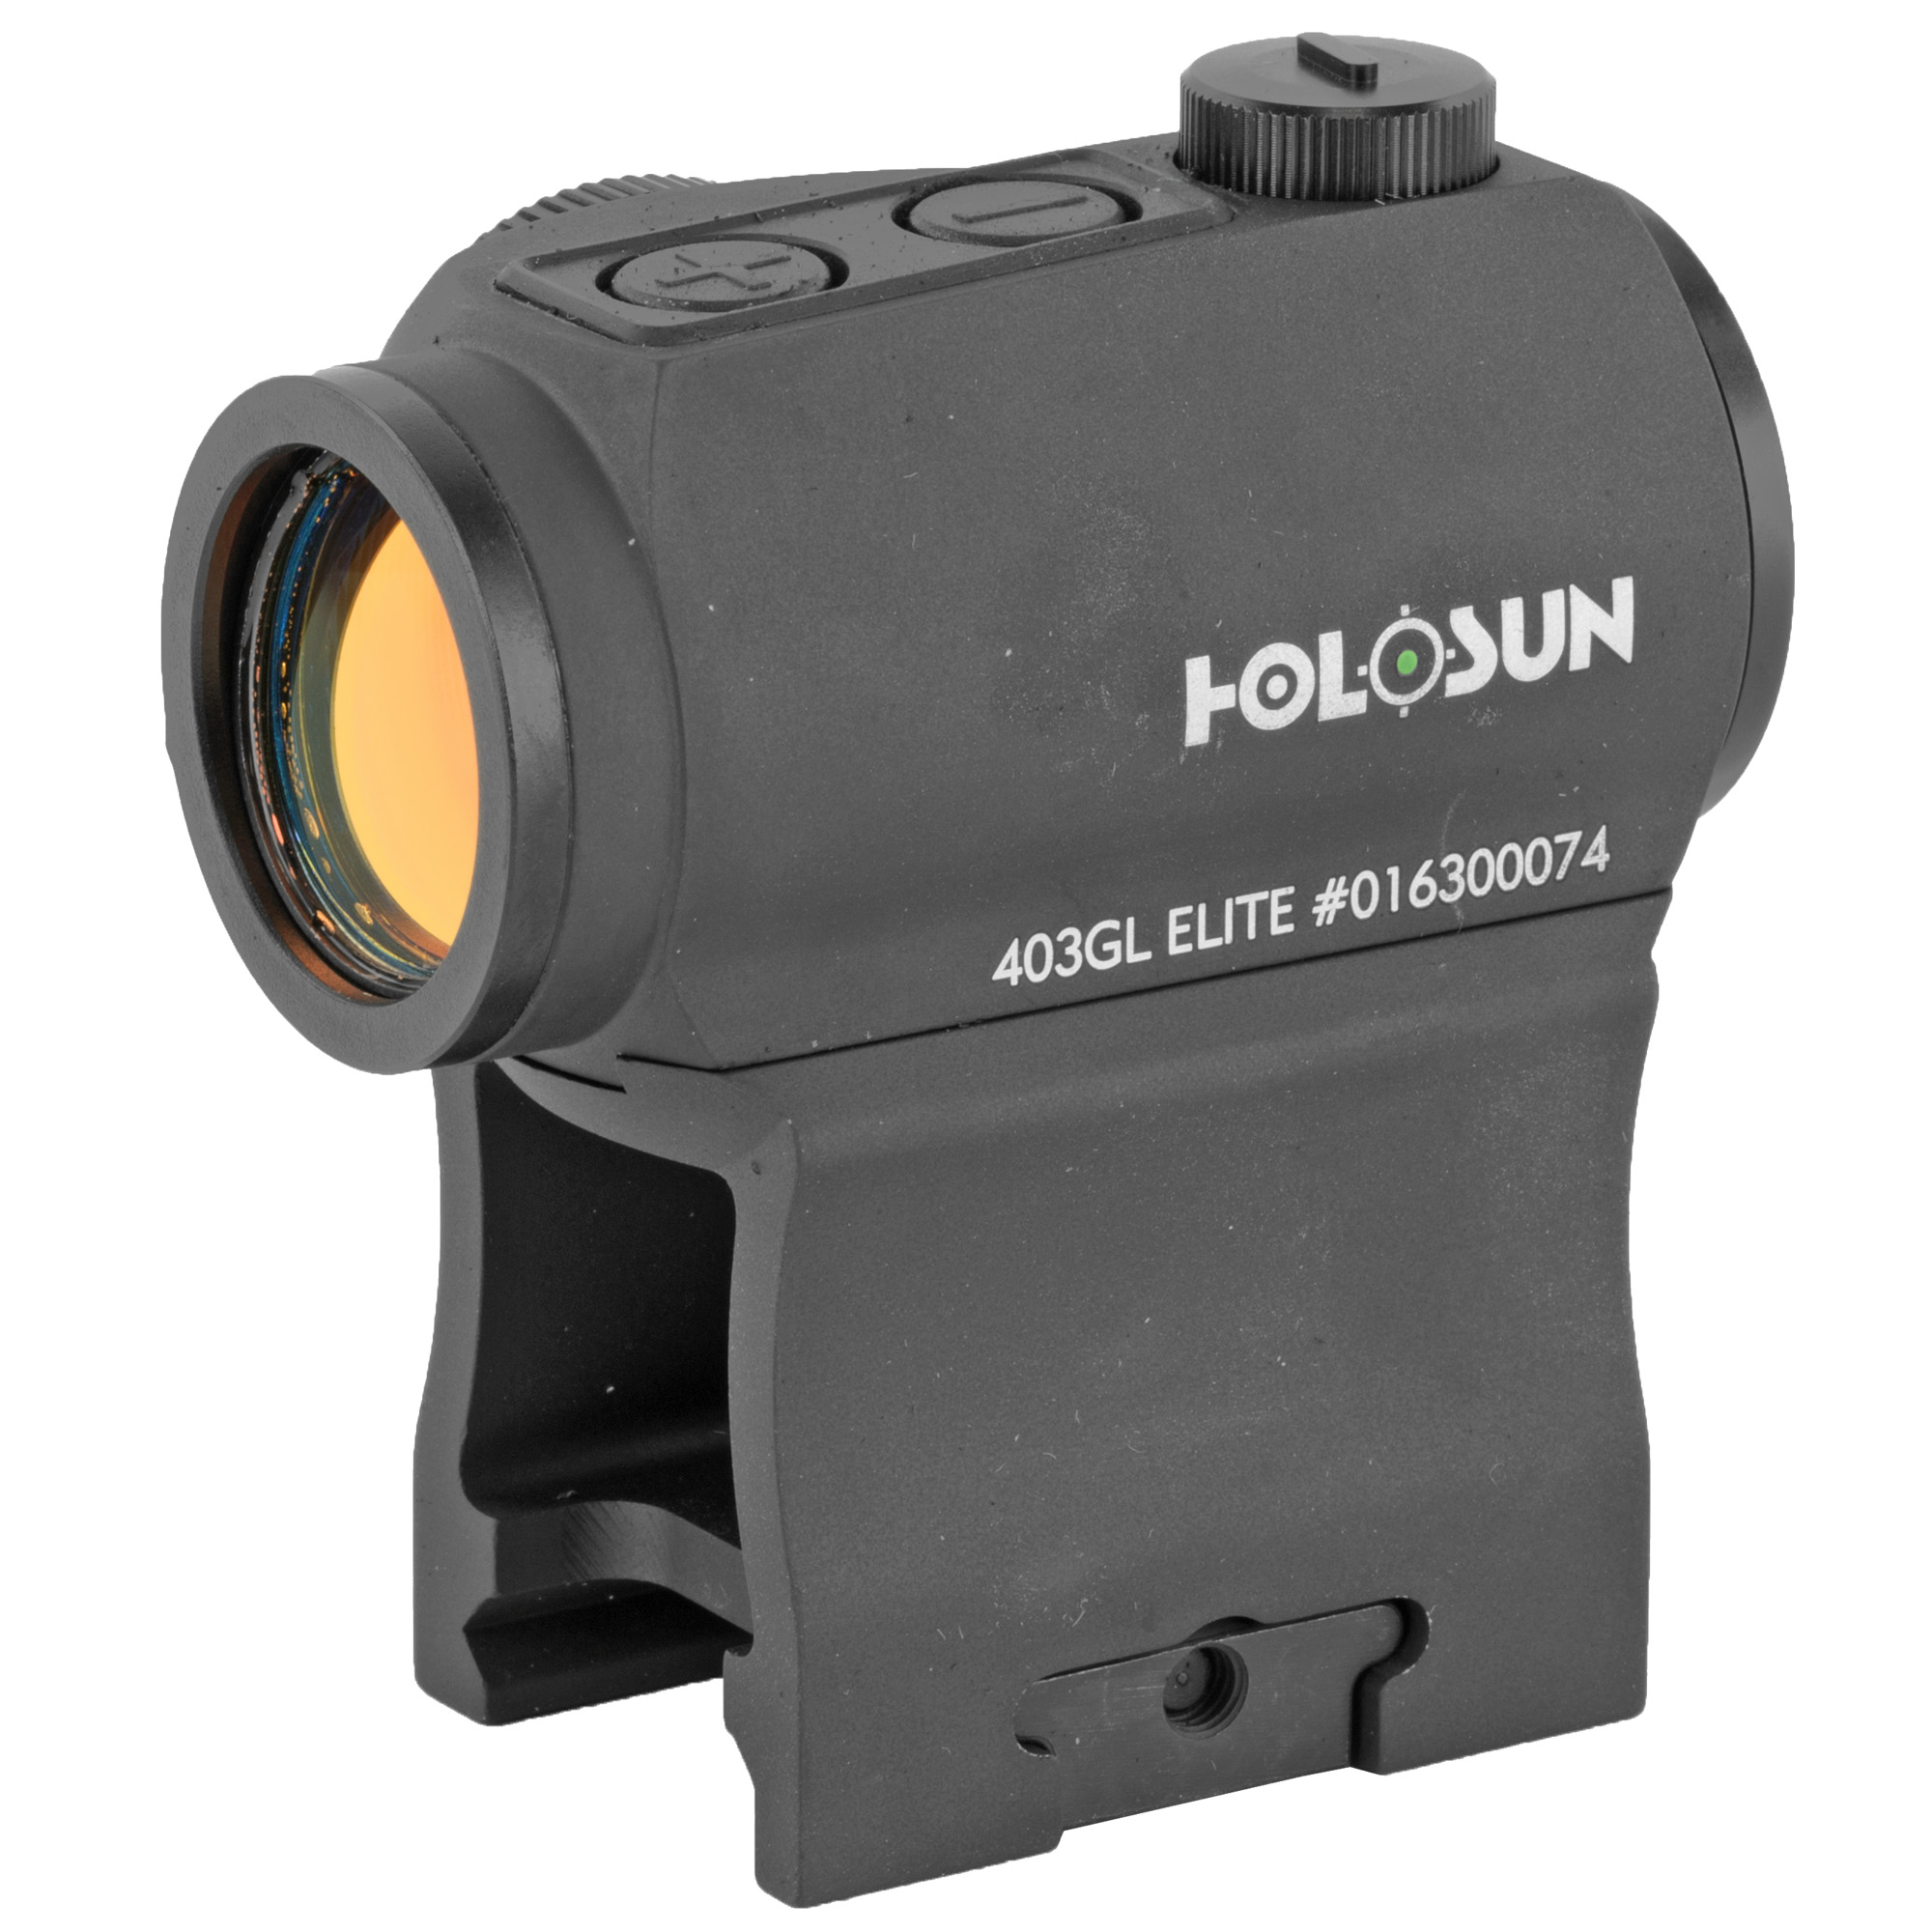 """The HE403GL-GR Elite is our new green reticle version of the extremely popular Classic HS403GL. It is a small compact red dot sight with side battery housing and H/L adjusting turret options. Employing Holosun's LED technology"""" the lifetime for one CR2032 battery can be up to 5 years. Holosun's """"Shake Awake"""" technology automatically turns the optic on at the slightest movement. When the optic senses no movement"""" it will go to sleep."""